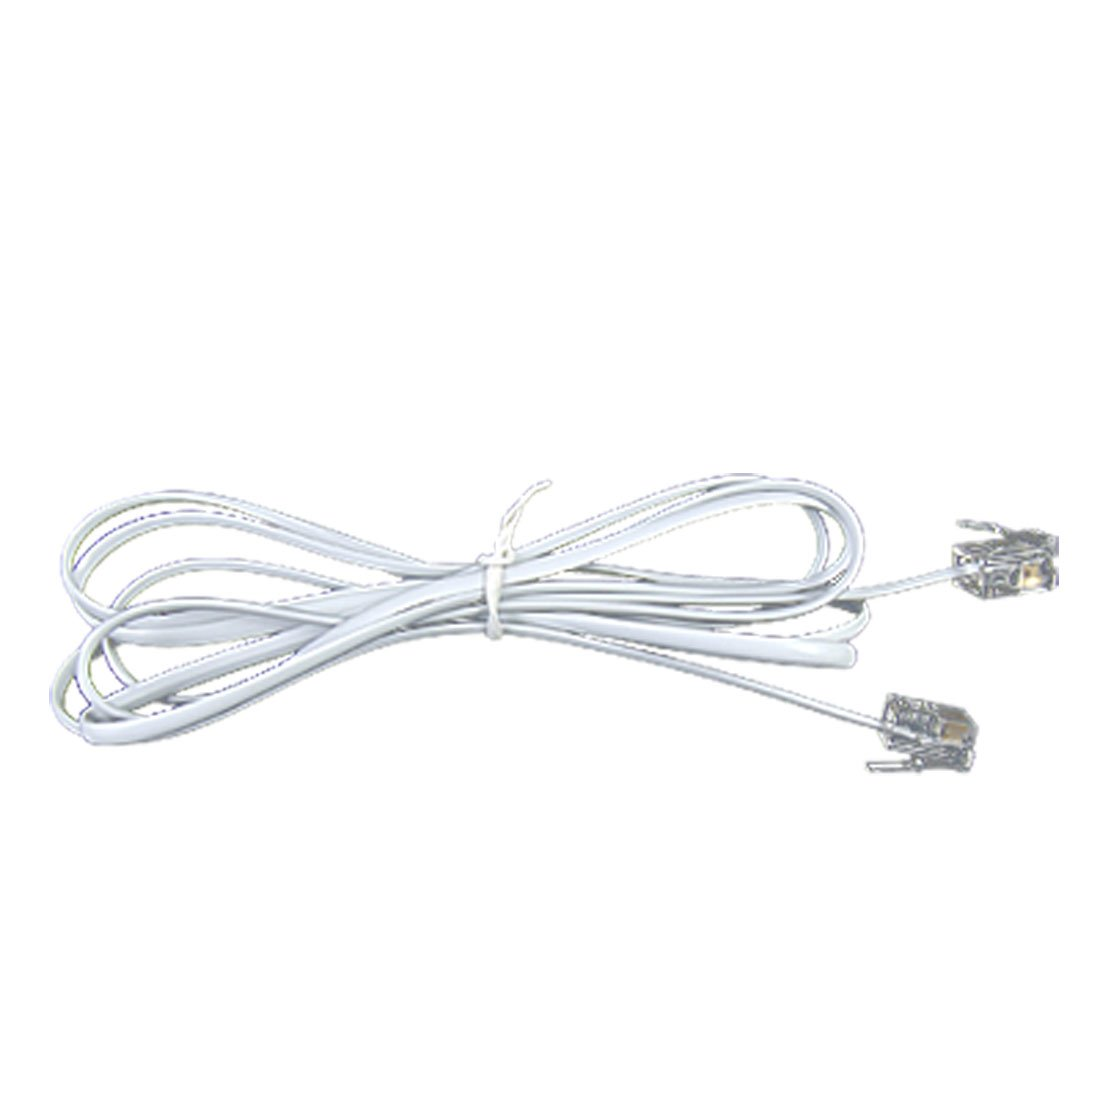 Standard Telephone Cable Wiring 48ft Rj11 To Male Connector White Bt Cord Is Used For Phones